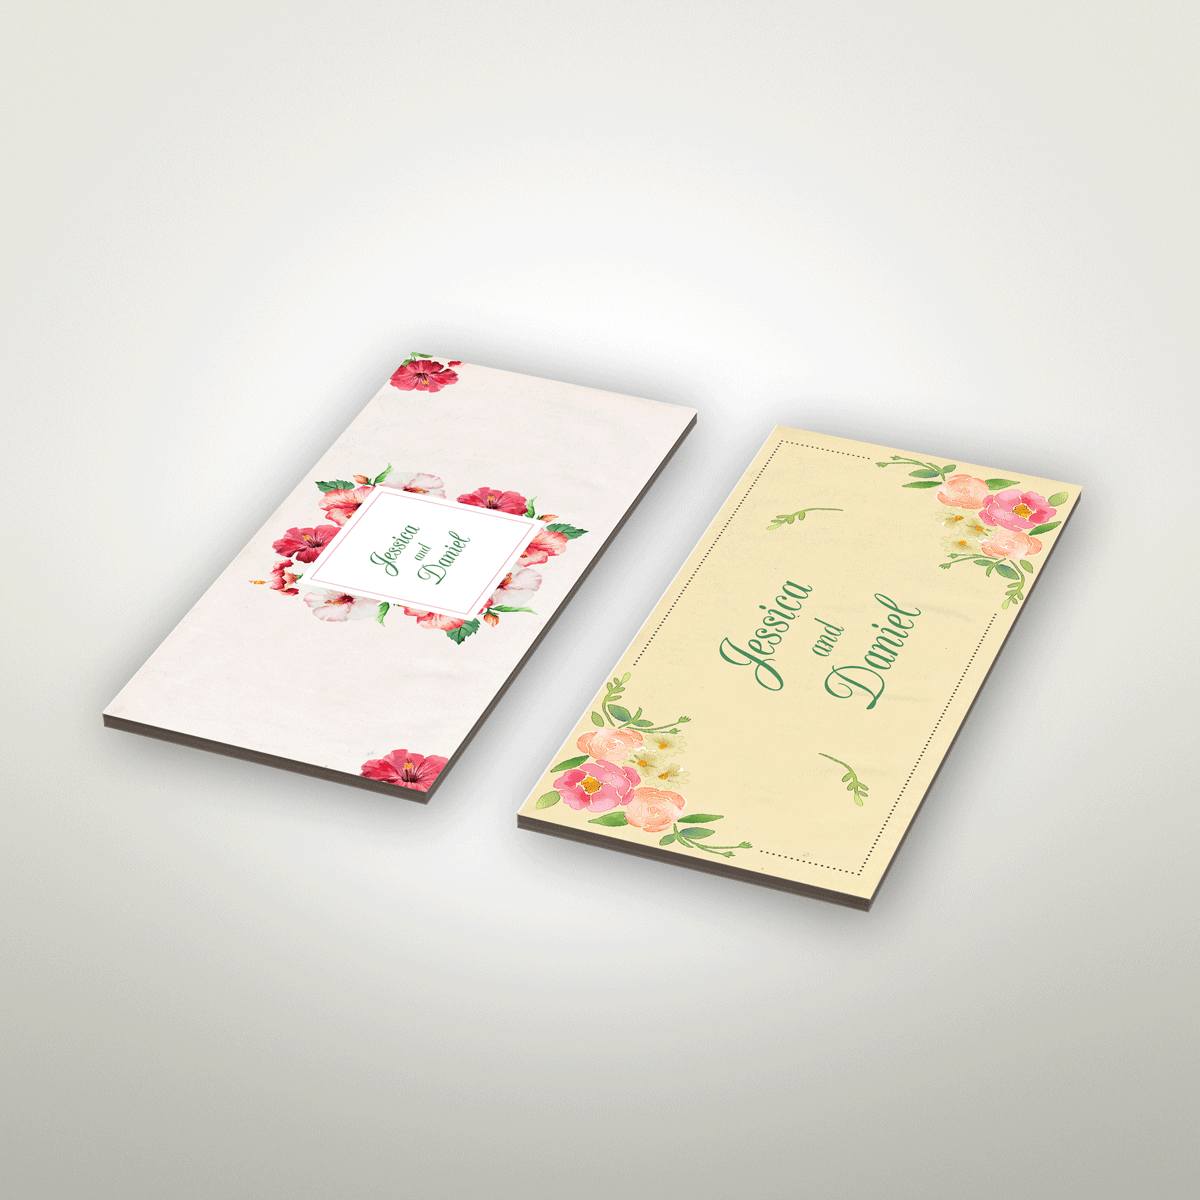 trade price quality wedding card free delivery london ec1 near me